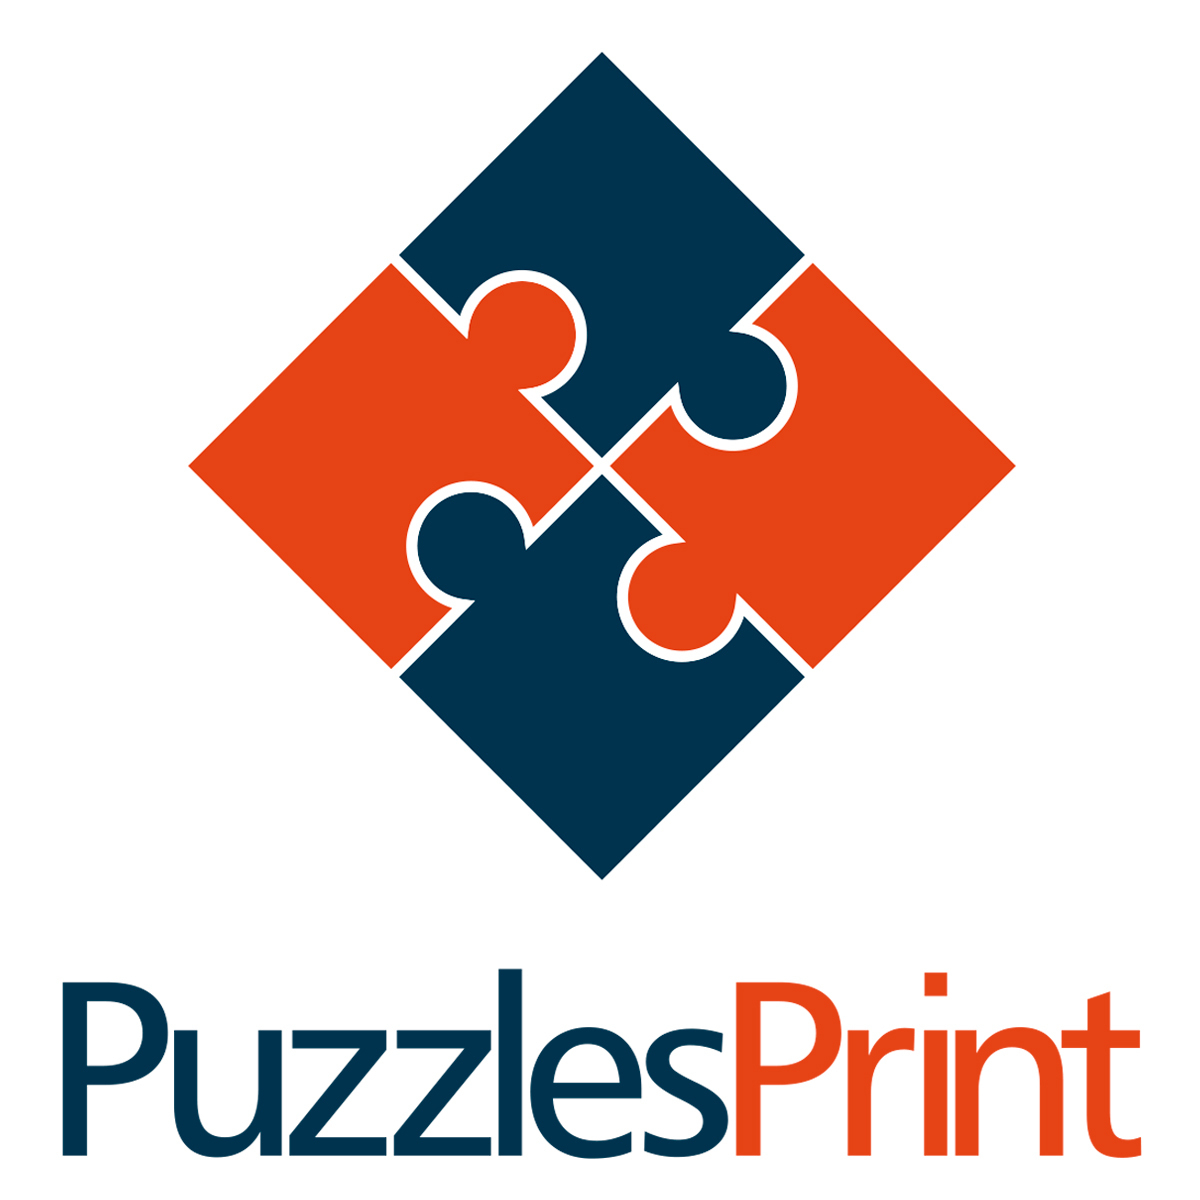 Make Your Own Personalised Jigsaw. Photo Puzzles Made To Order. - Puzzle Print Uk